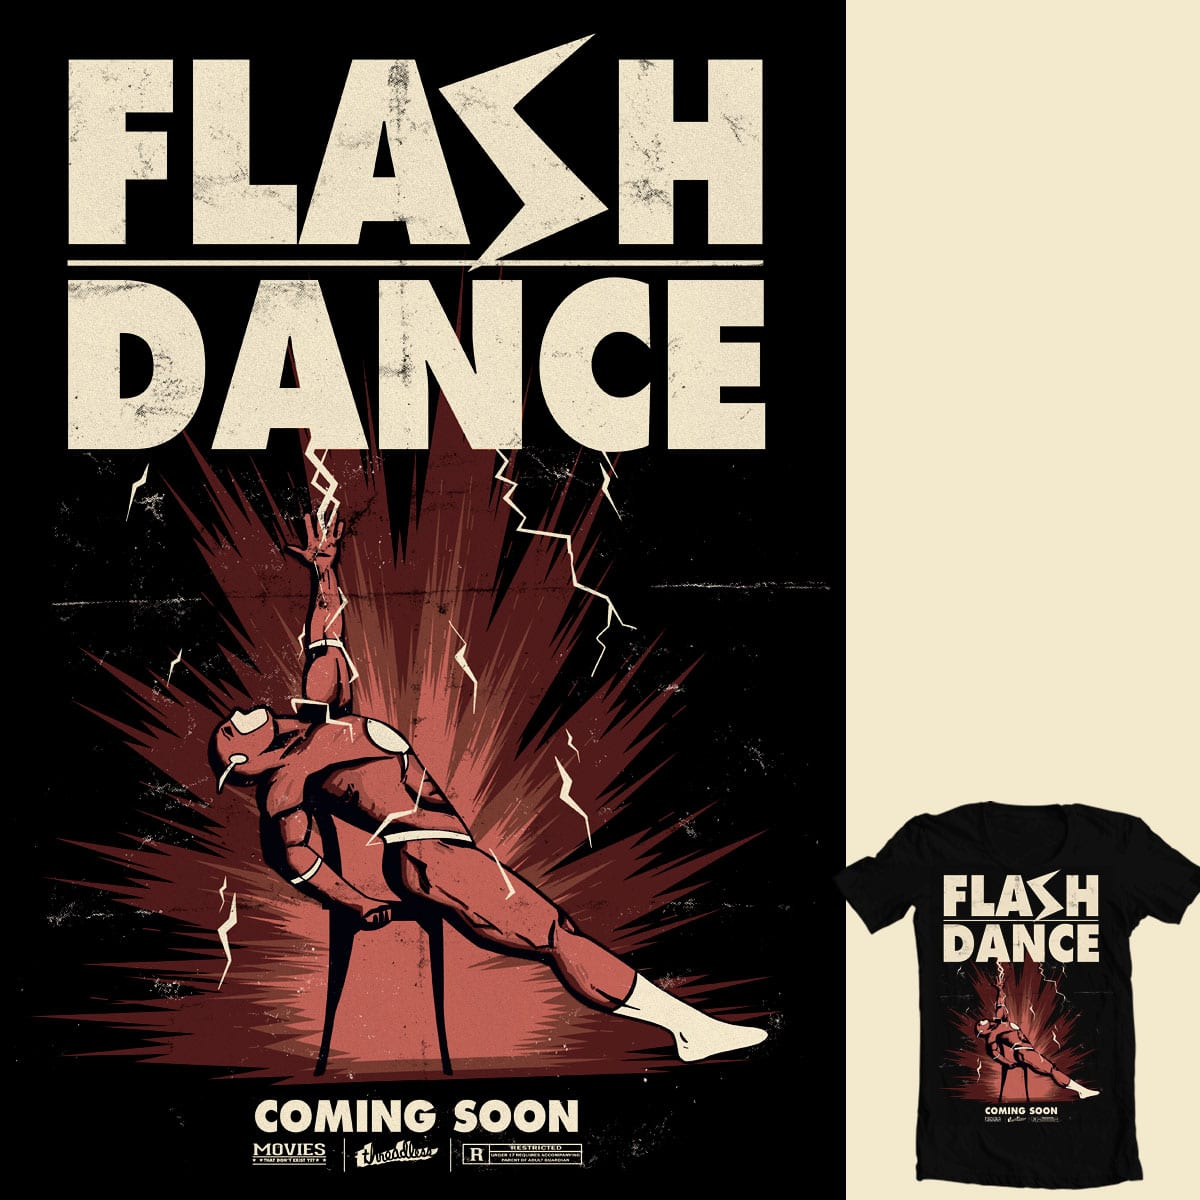 Flash-Dance by Dani Martinez on Threadless